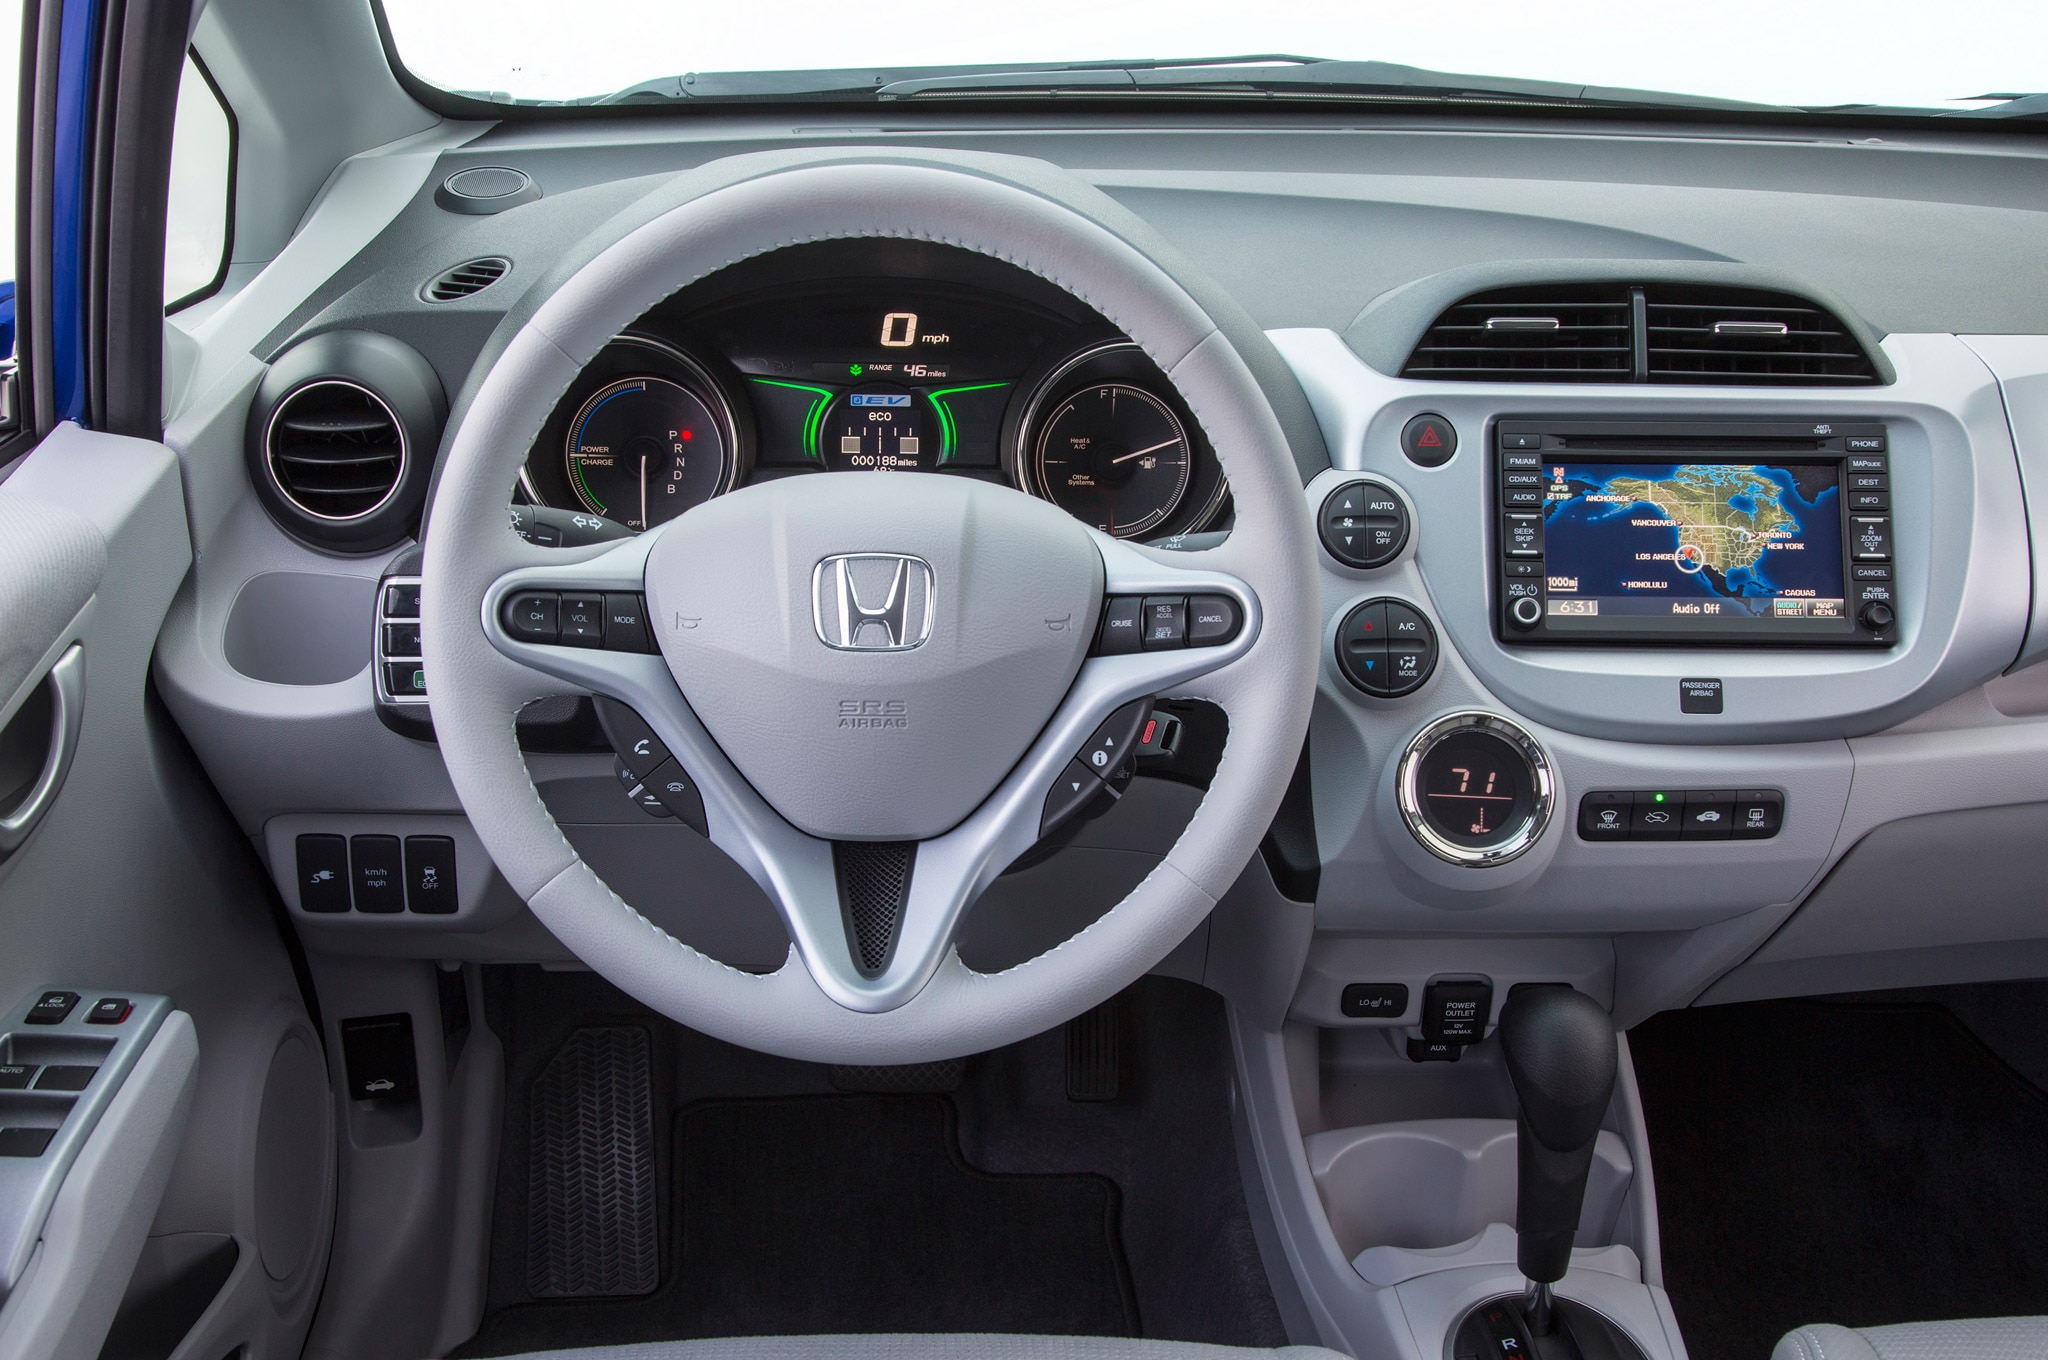 Honda Fit EV Lease Price Dropped, Free Insurance Added